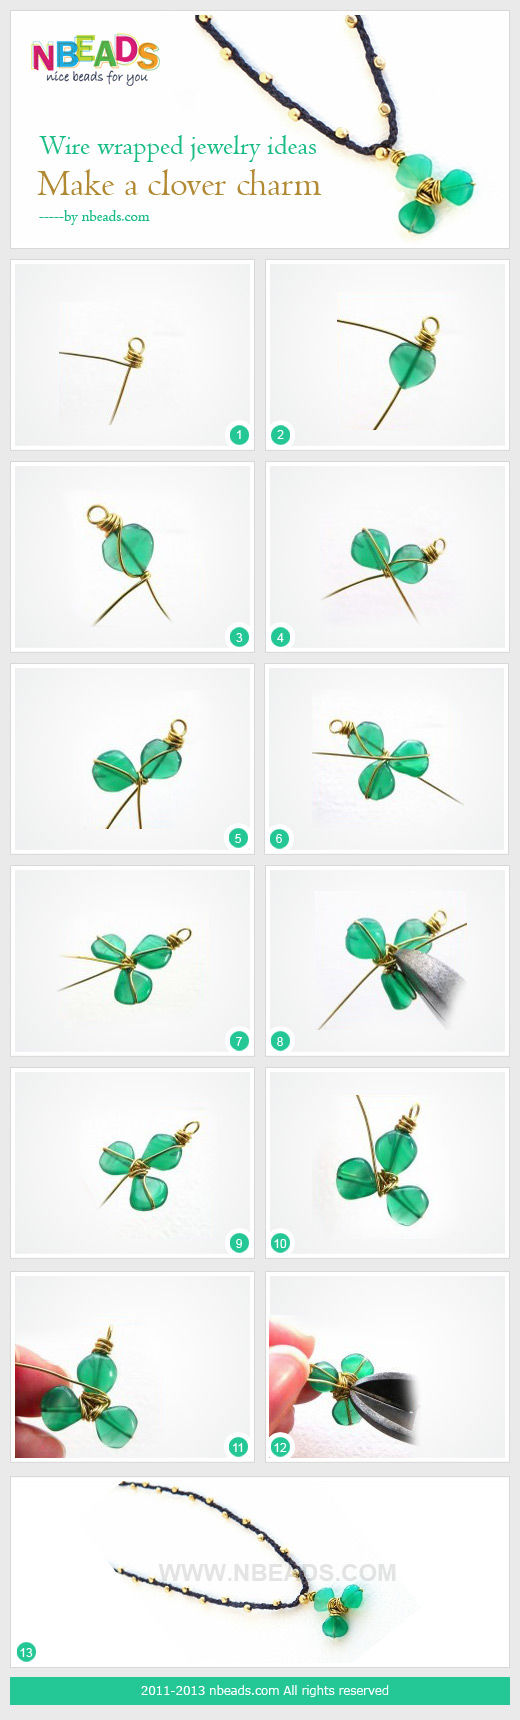 Wire Wrapped Jewelry Ideas - Make A Clover Charm Pictures, Photos, and ...